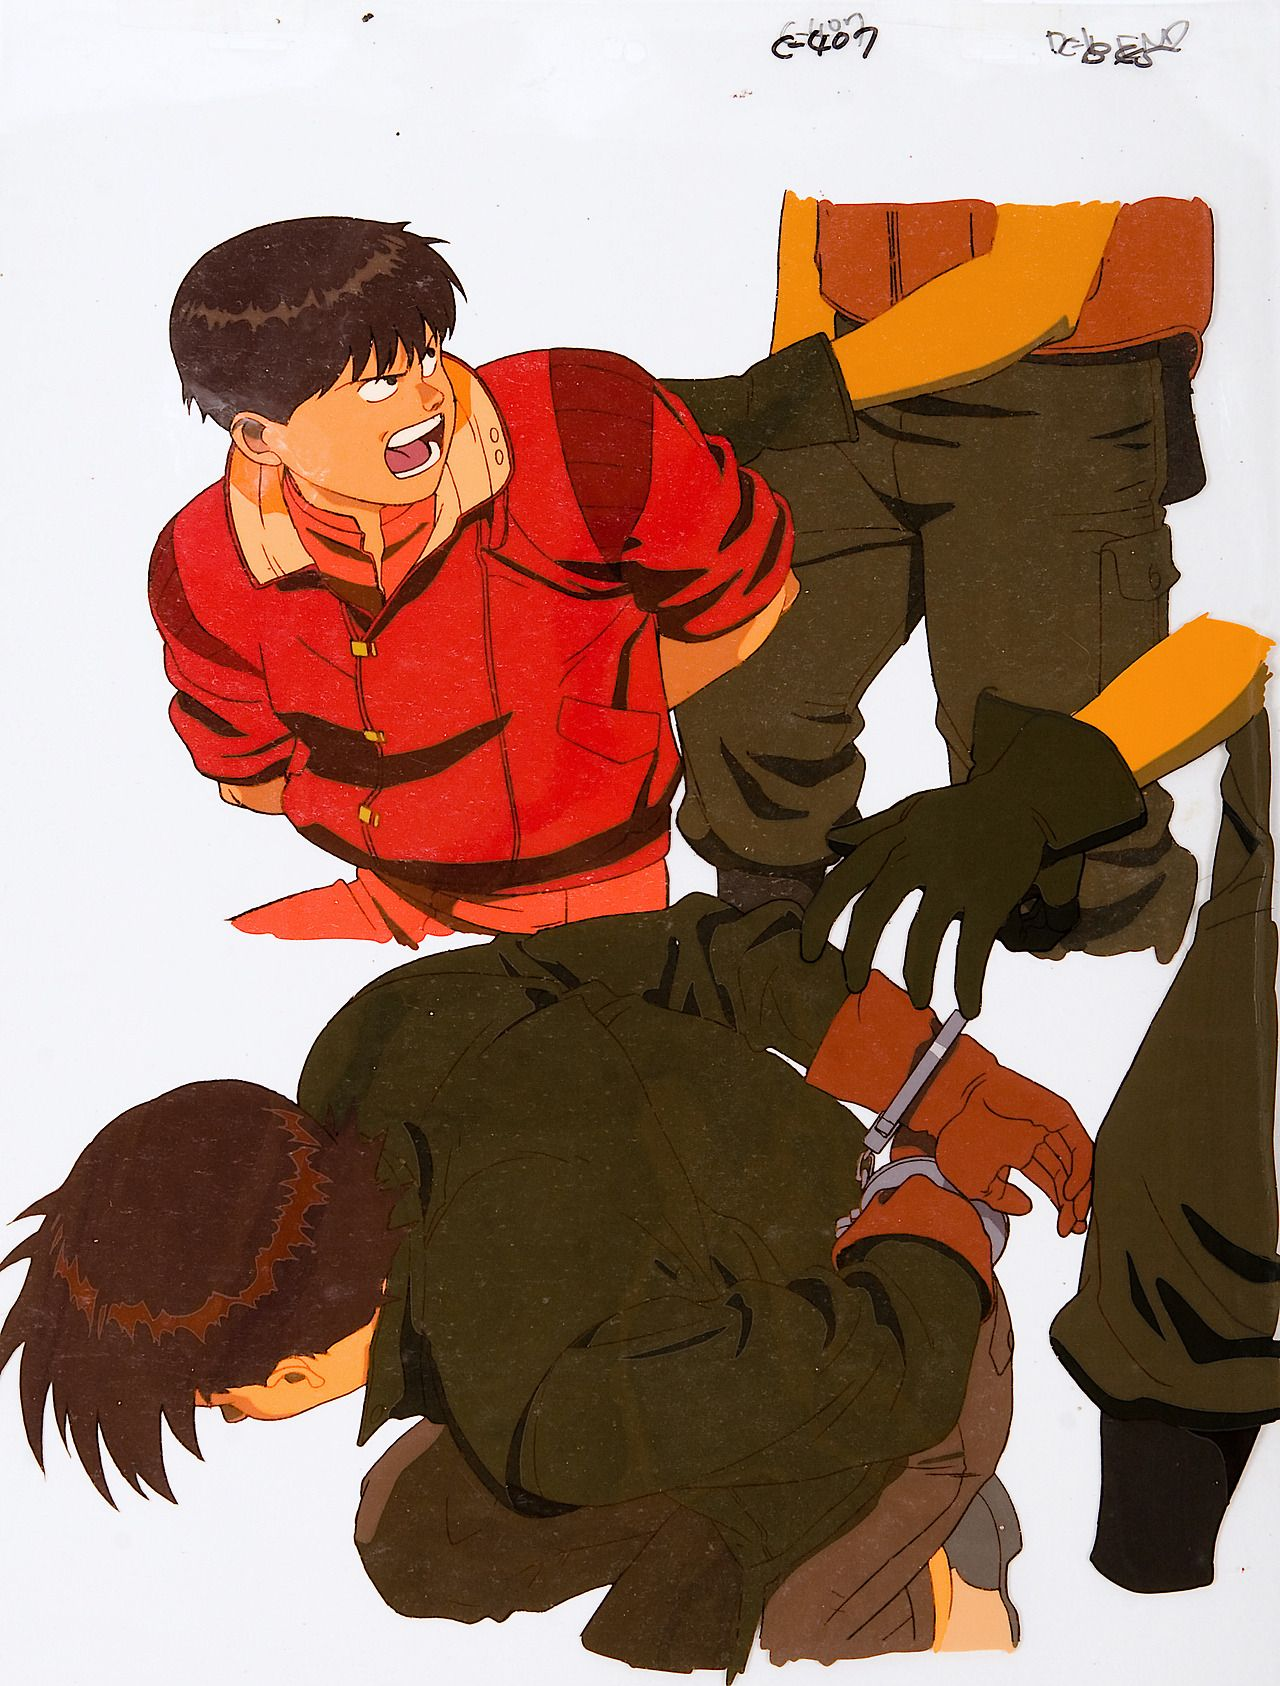 Akira 1988 Oversize End Cel 435mm X 350mm Kaneda And Kaisuke Are Arrested By Government Troops In Pursuit Of Takashi Akira Anime Akira Character Art